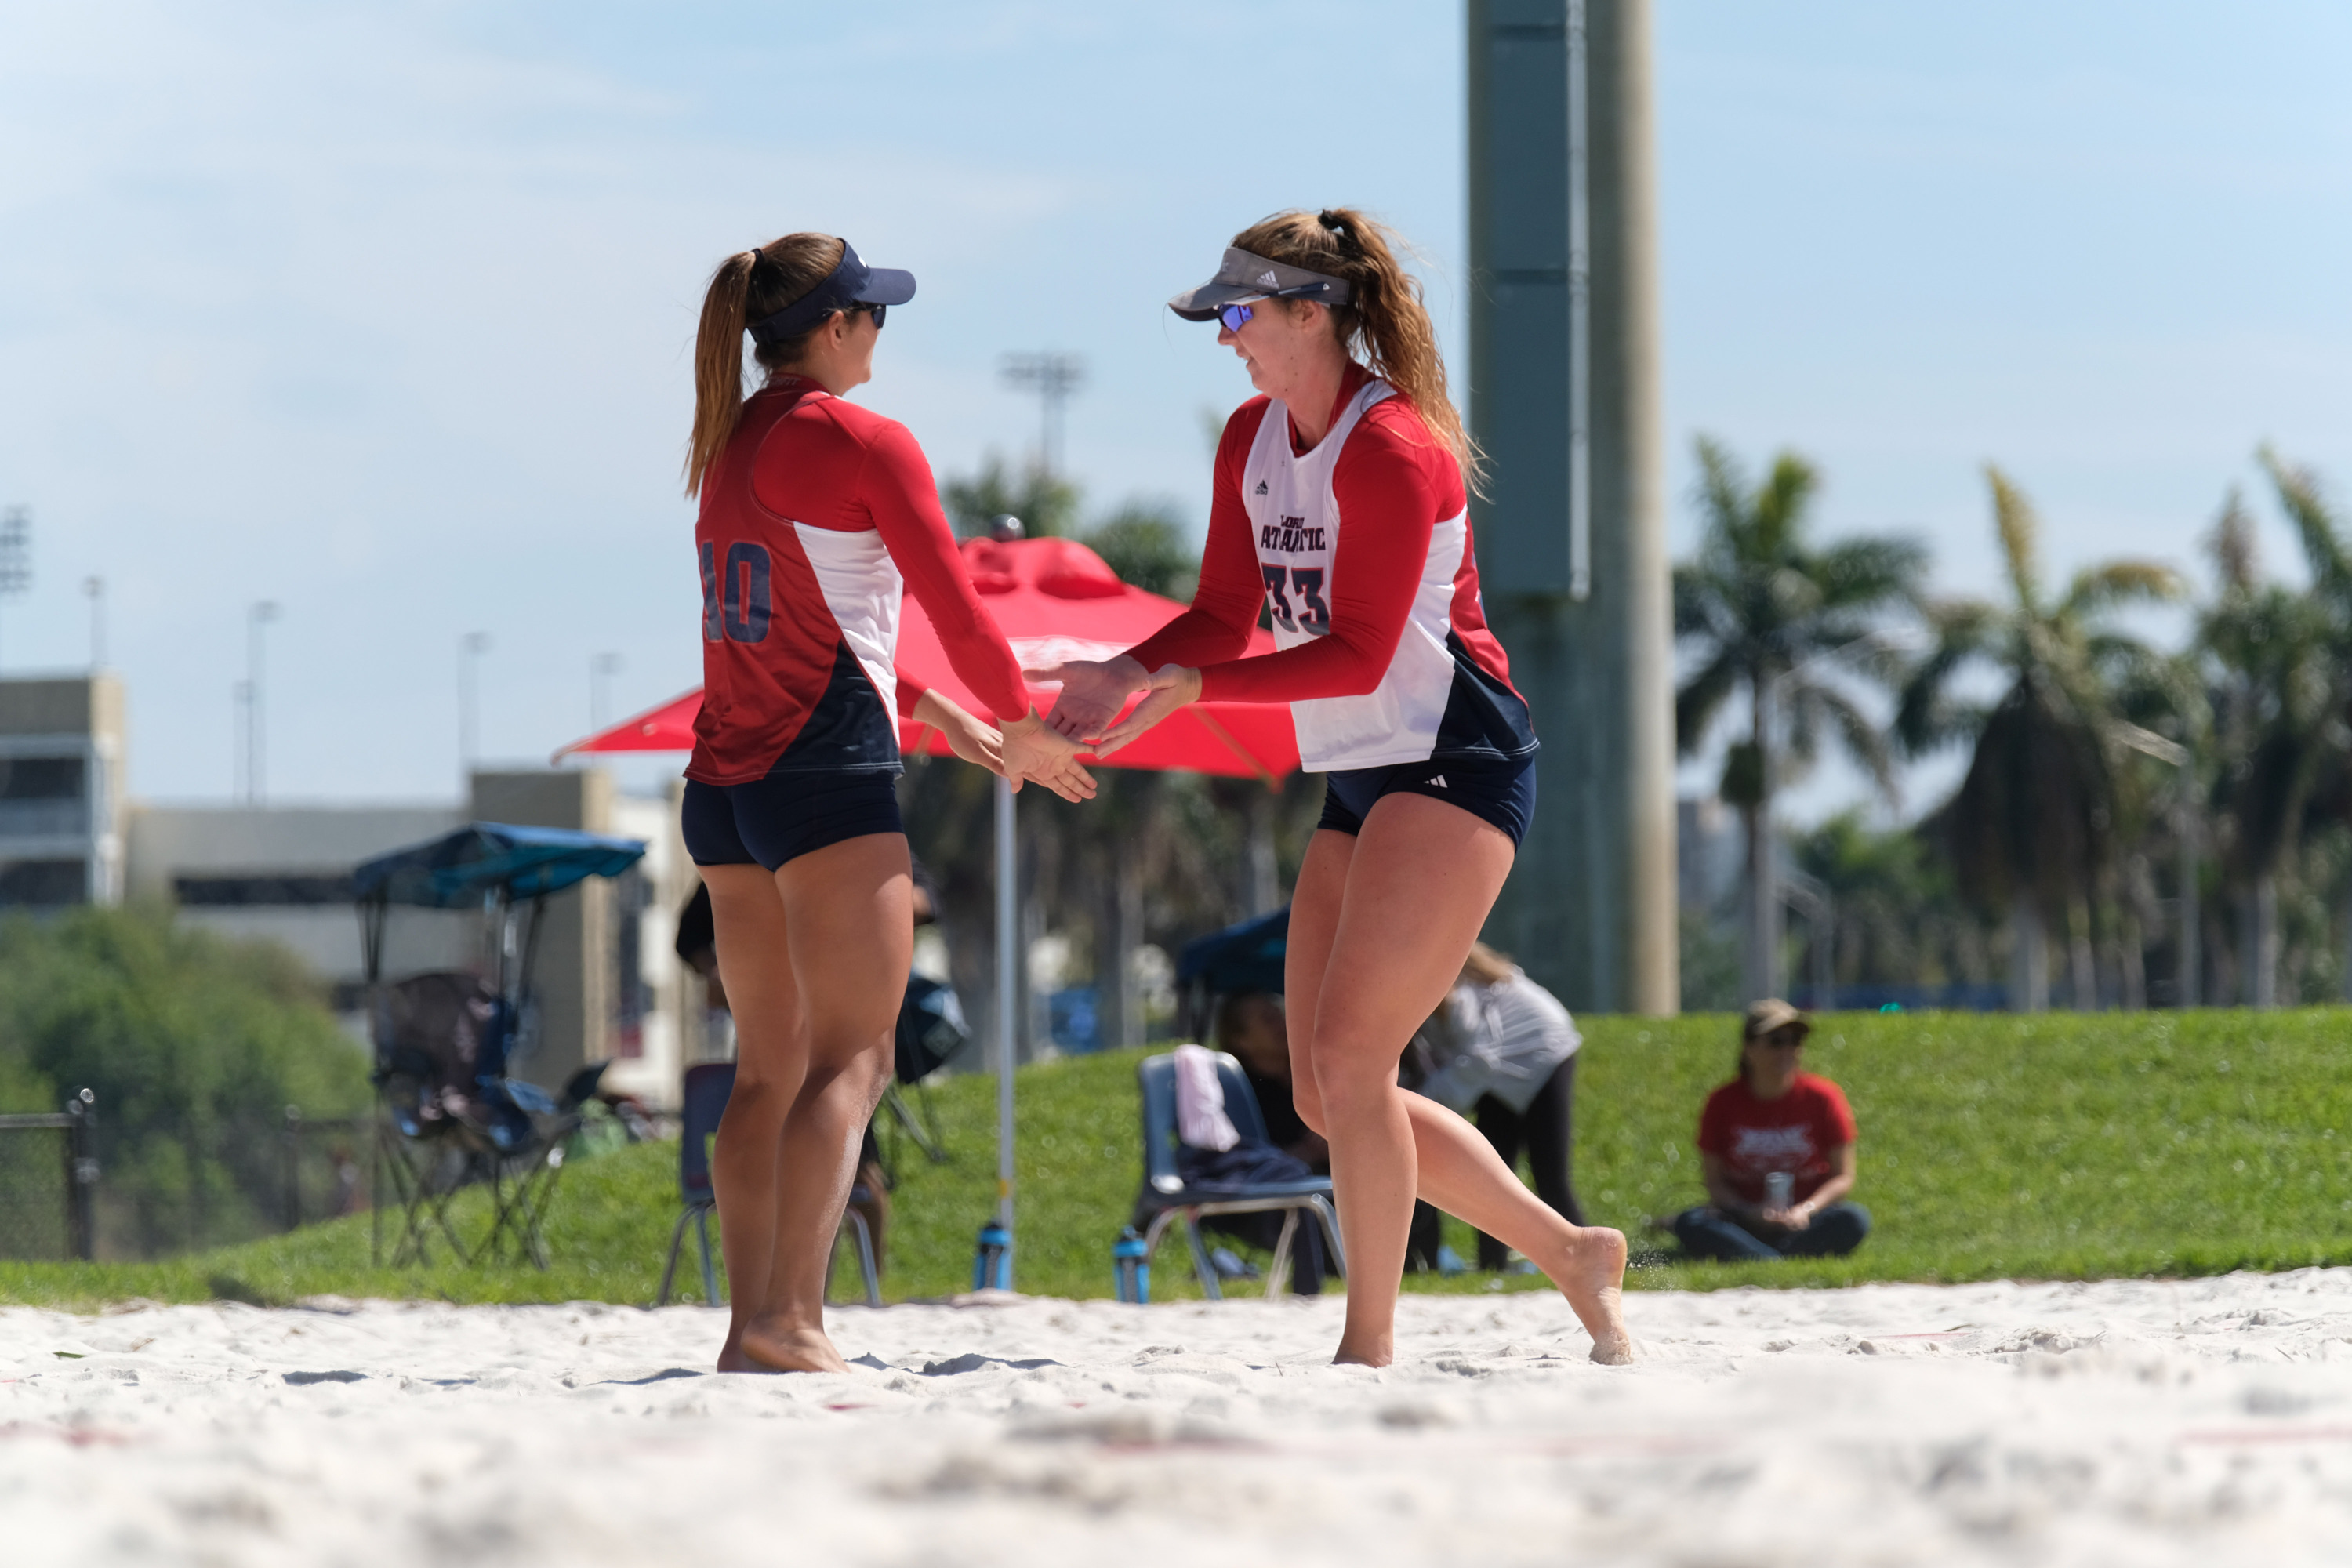 Brittany Pellitteri (L) and Carly Scarbrough (R).